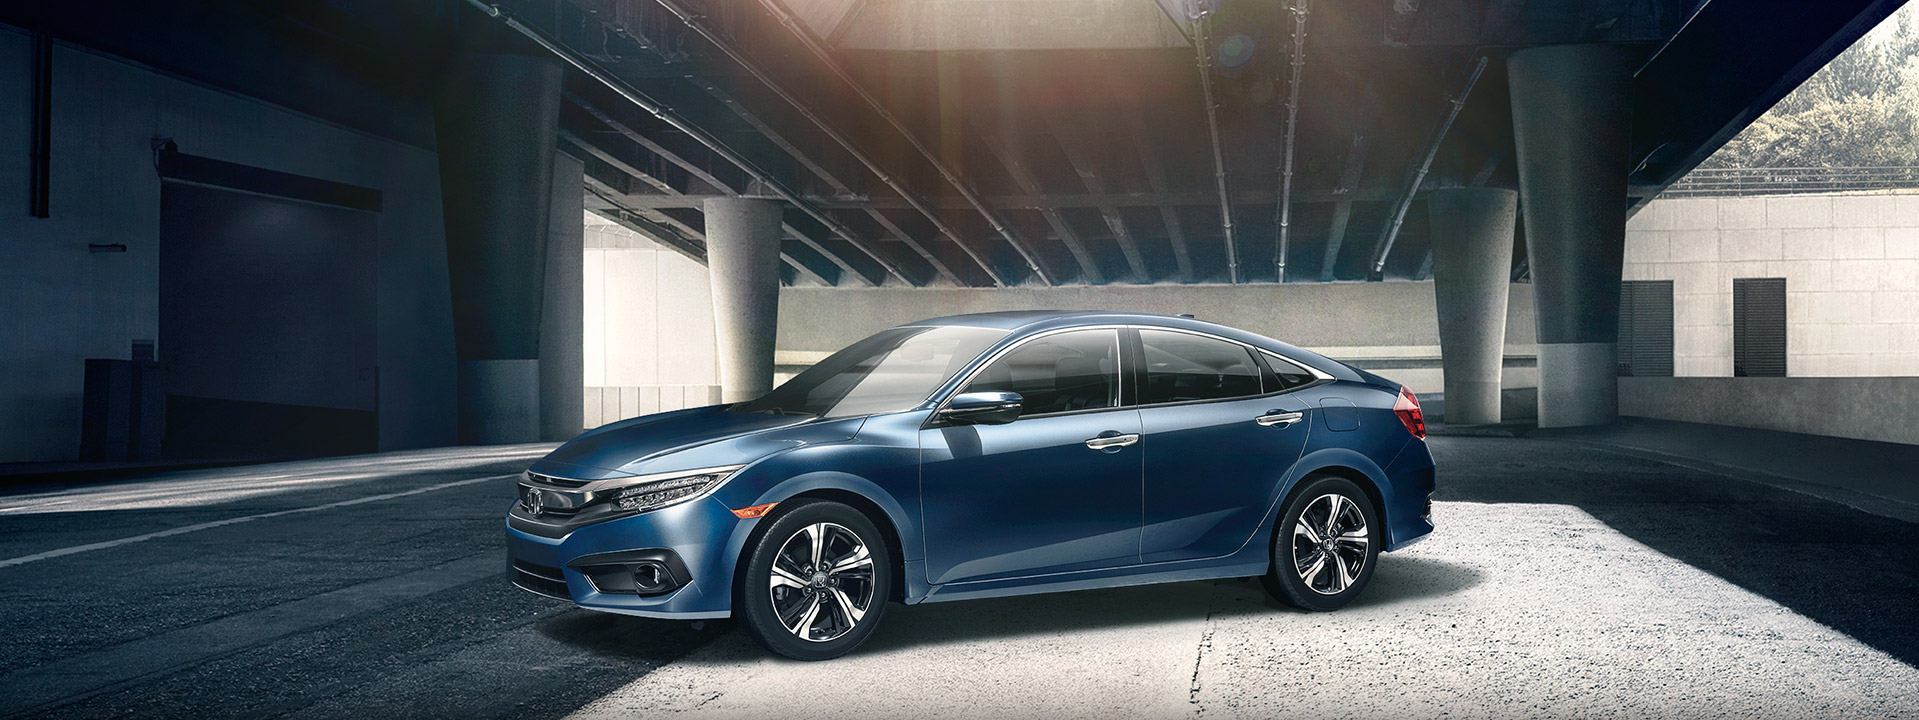 new 2018 honda civic sedan special offers state college pa bobby rahal honda of state college. Black Bedroom Furniture Sets. Home Design Ideas